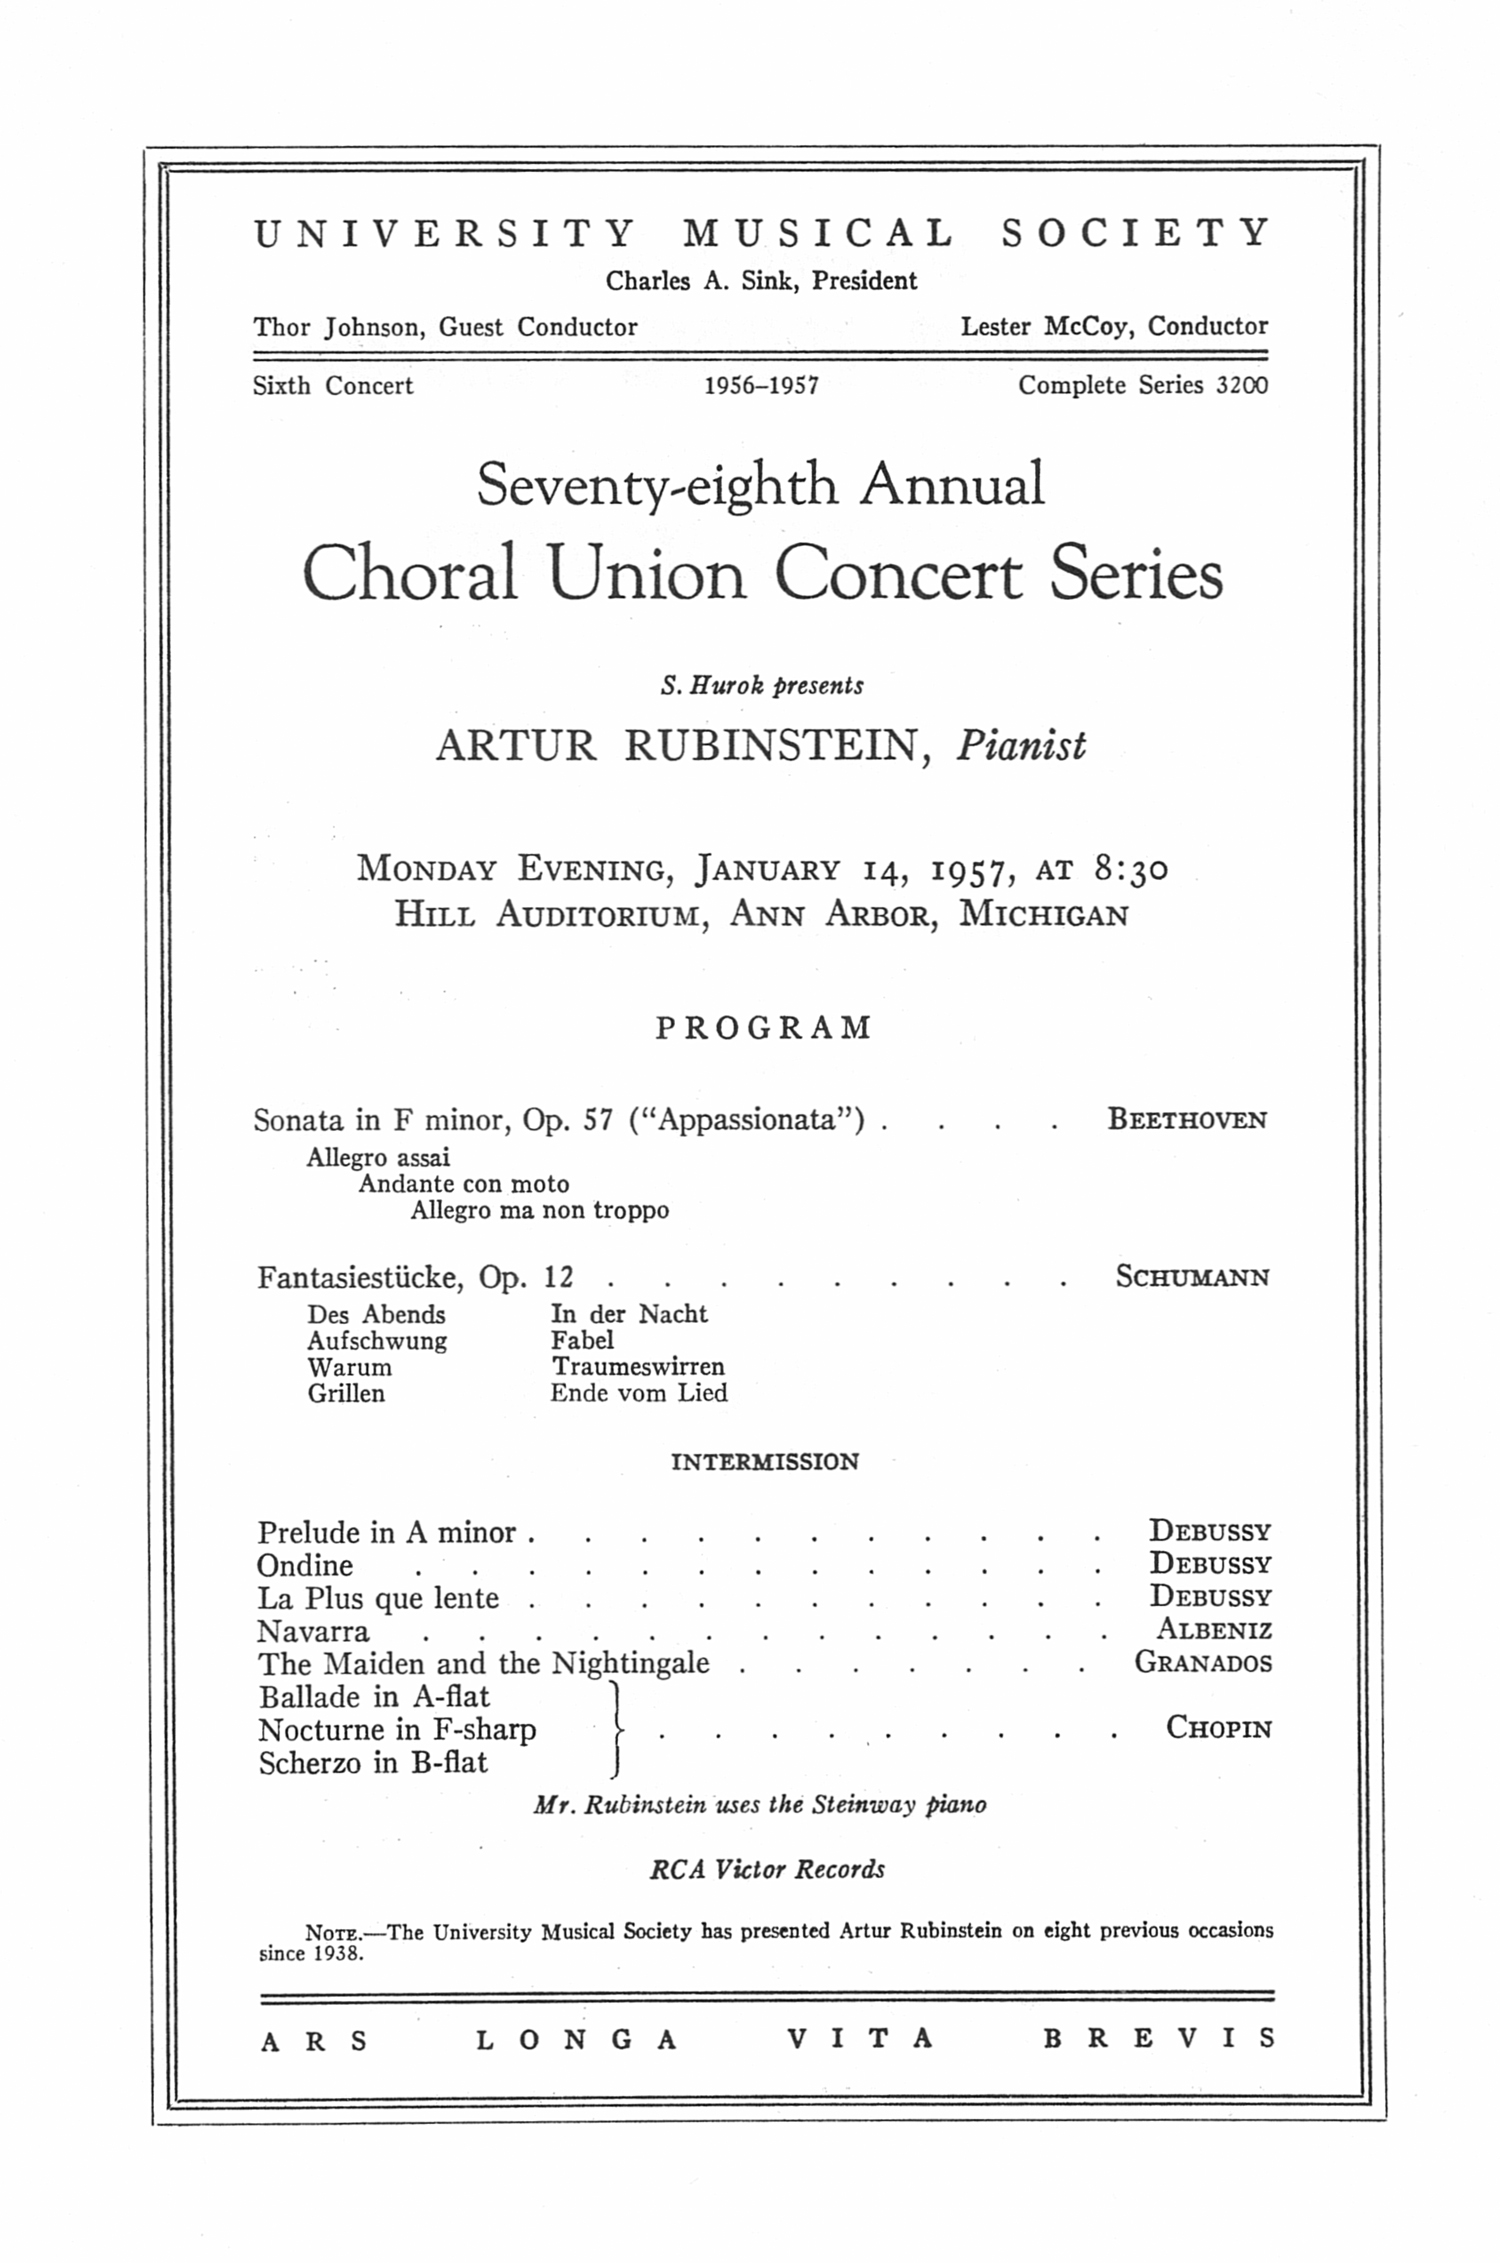 UMS Concert Program, January 14, 1957: Seventy-eighth Annual Choral Union Concert Series -- Artur Rubinstein image